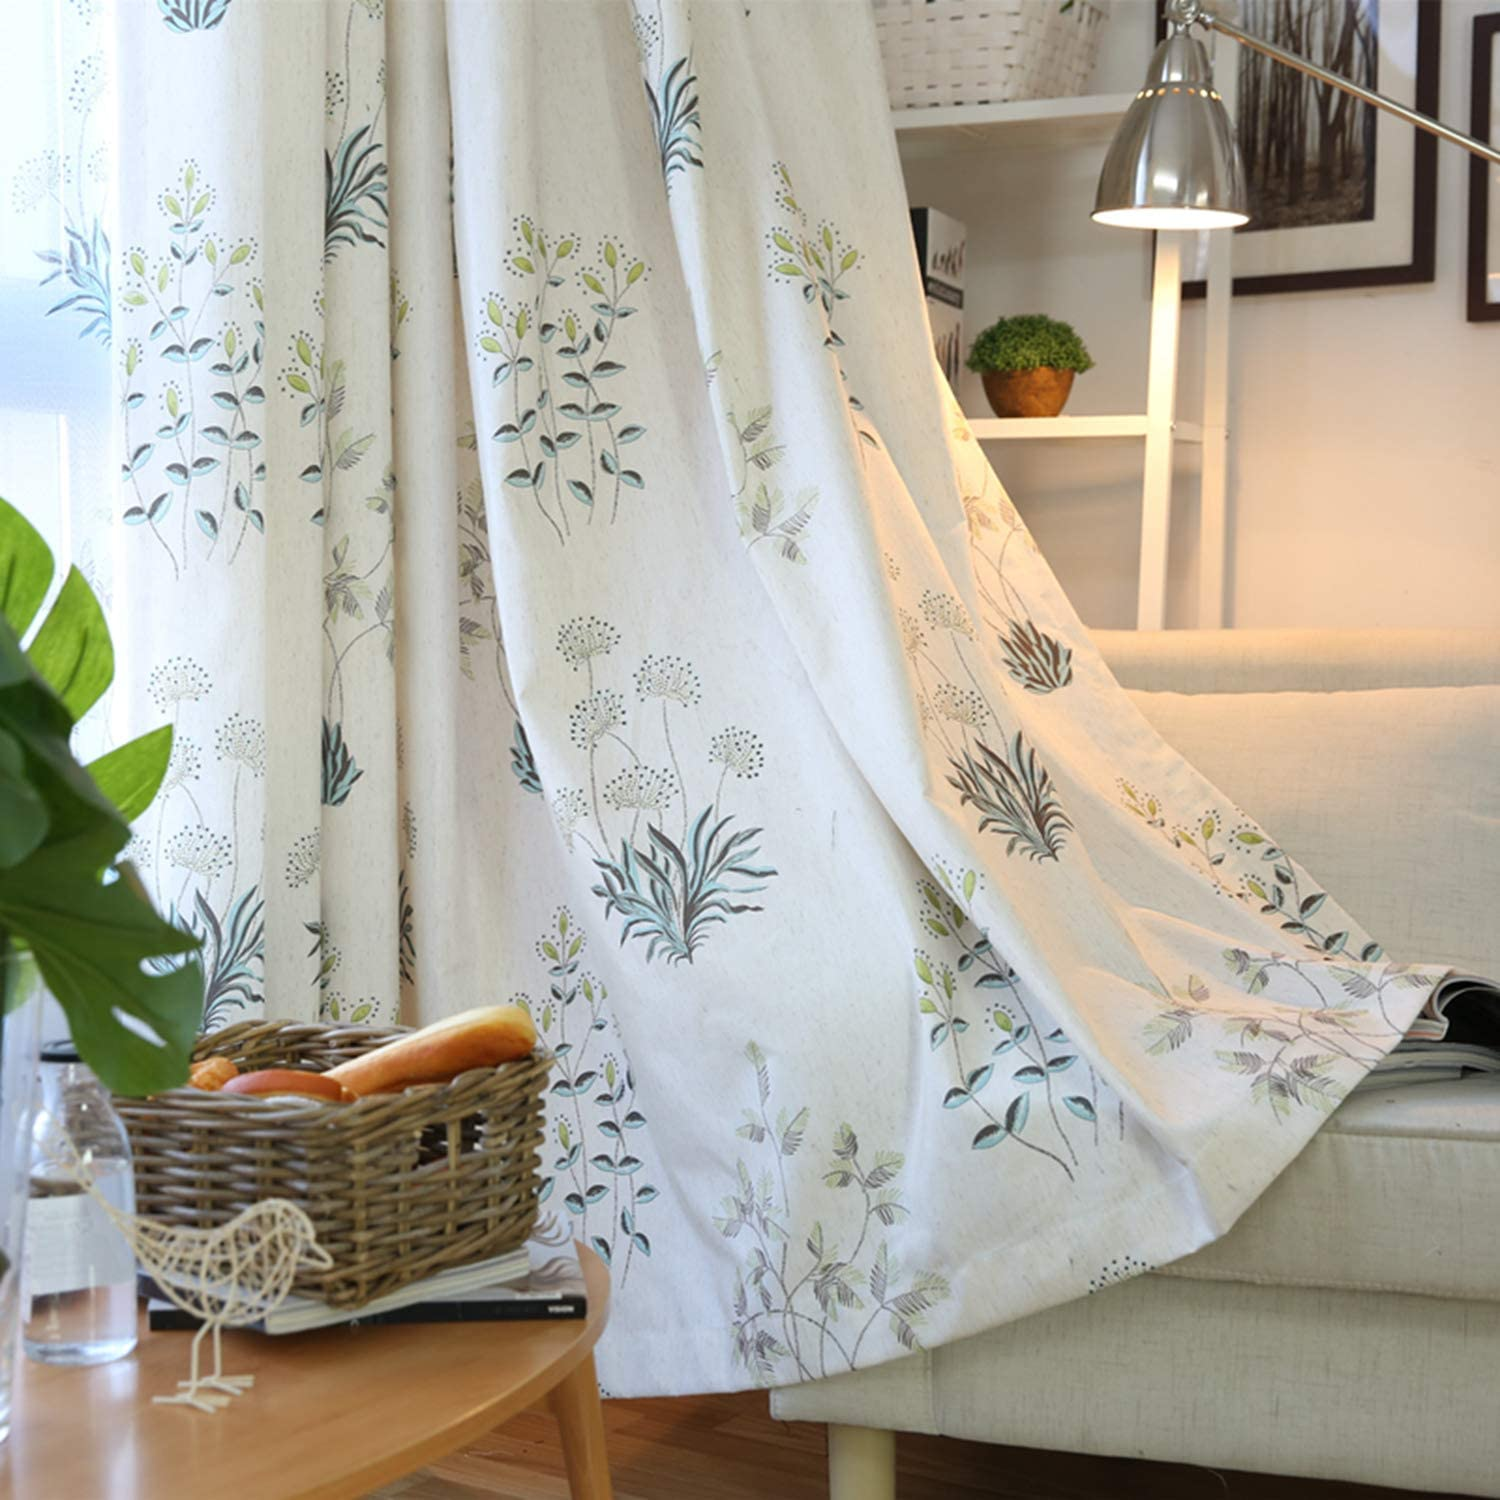 Sunian Print Curtains for Bedroom and Living Room, Small Windows,Curtain  Grommet Top-2 Panels W52 x L96 Plants